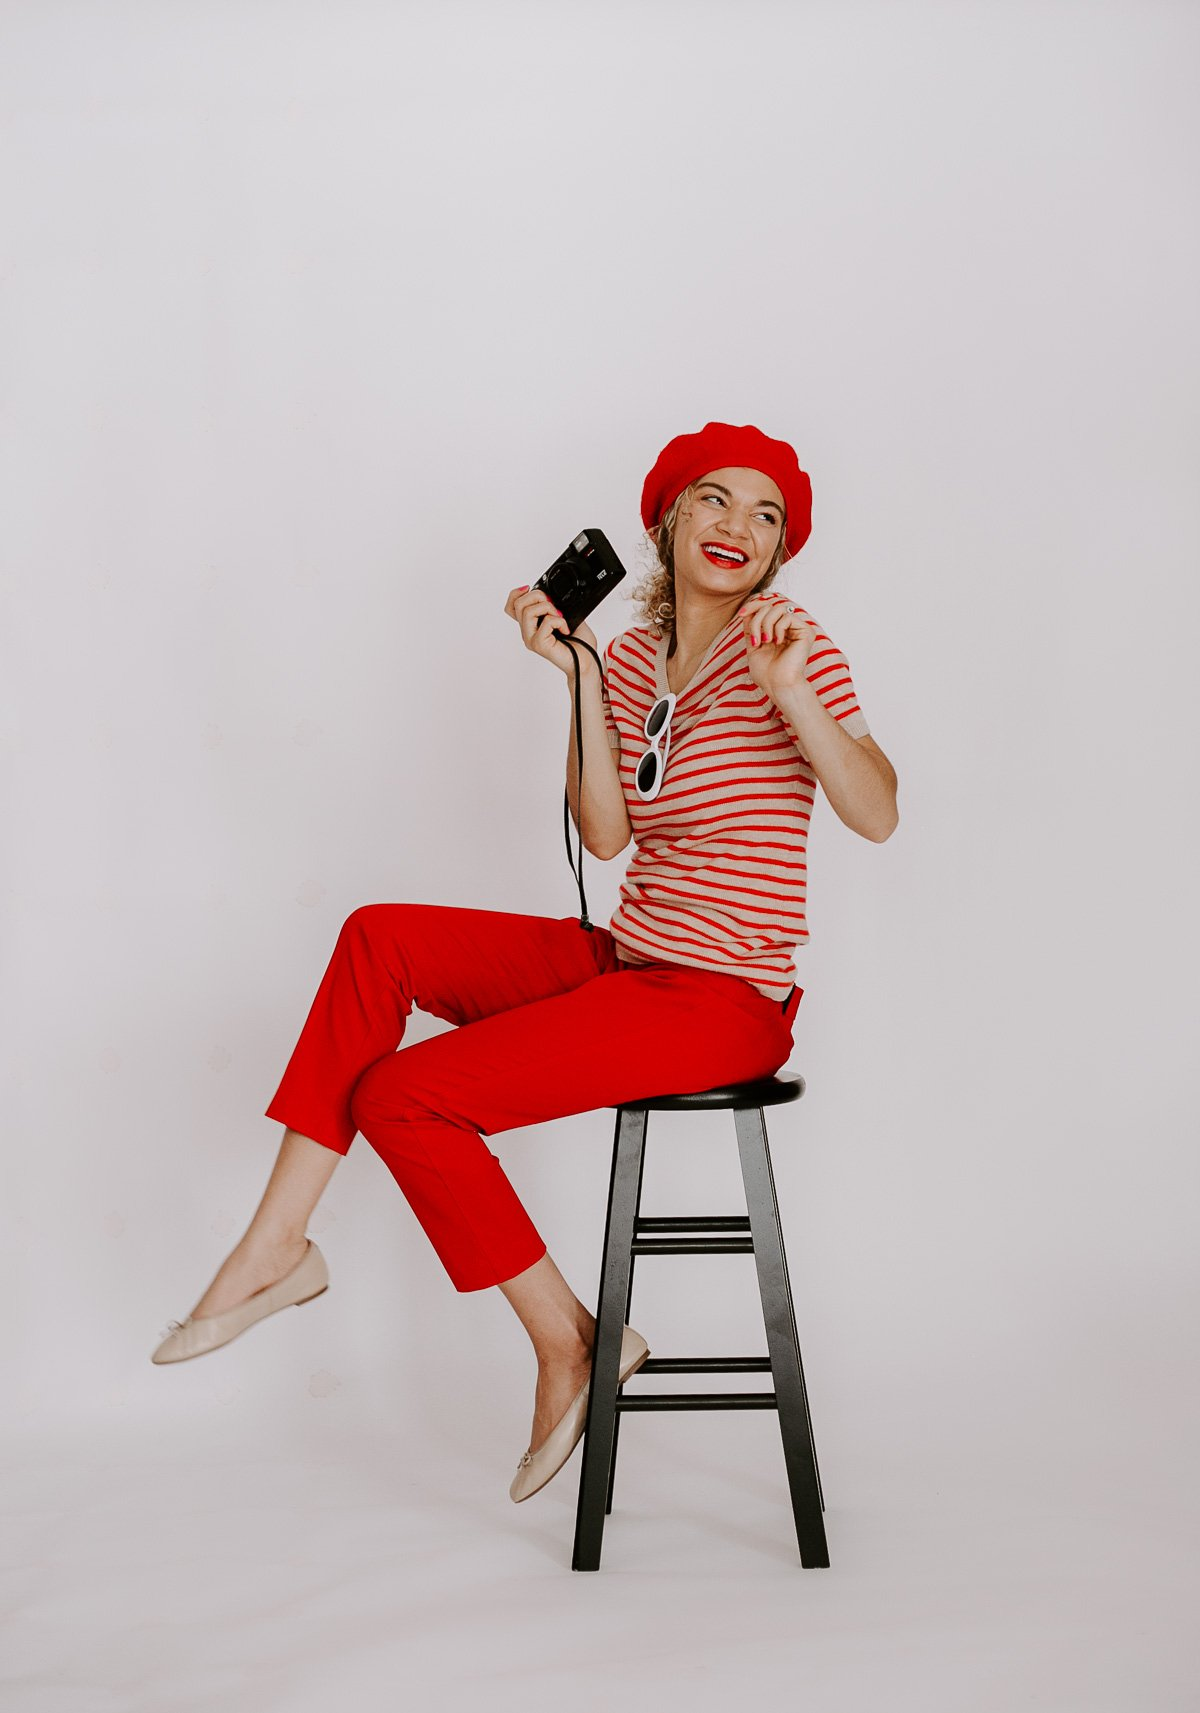 This red Parisian chic outfit with the striped top and beret is what all French style outfit dreams are made of!